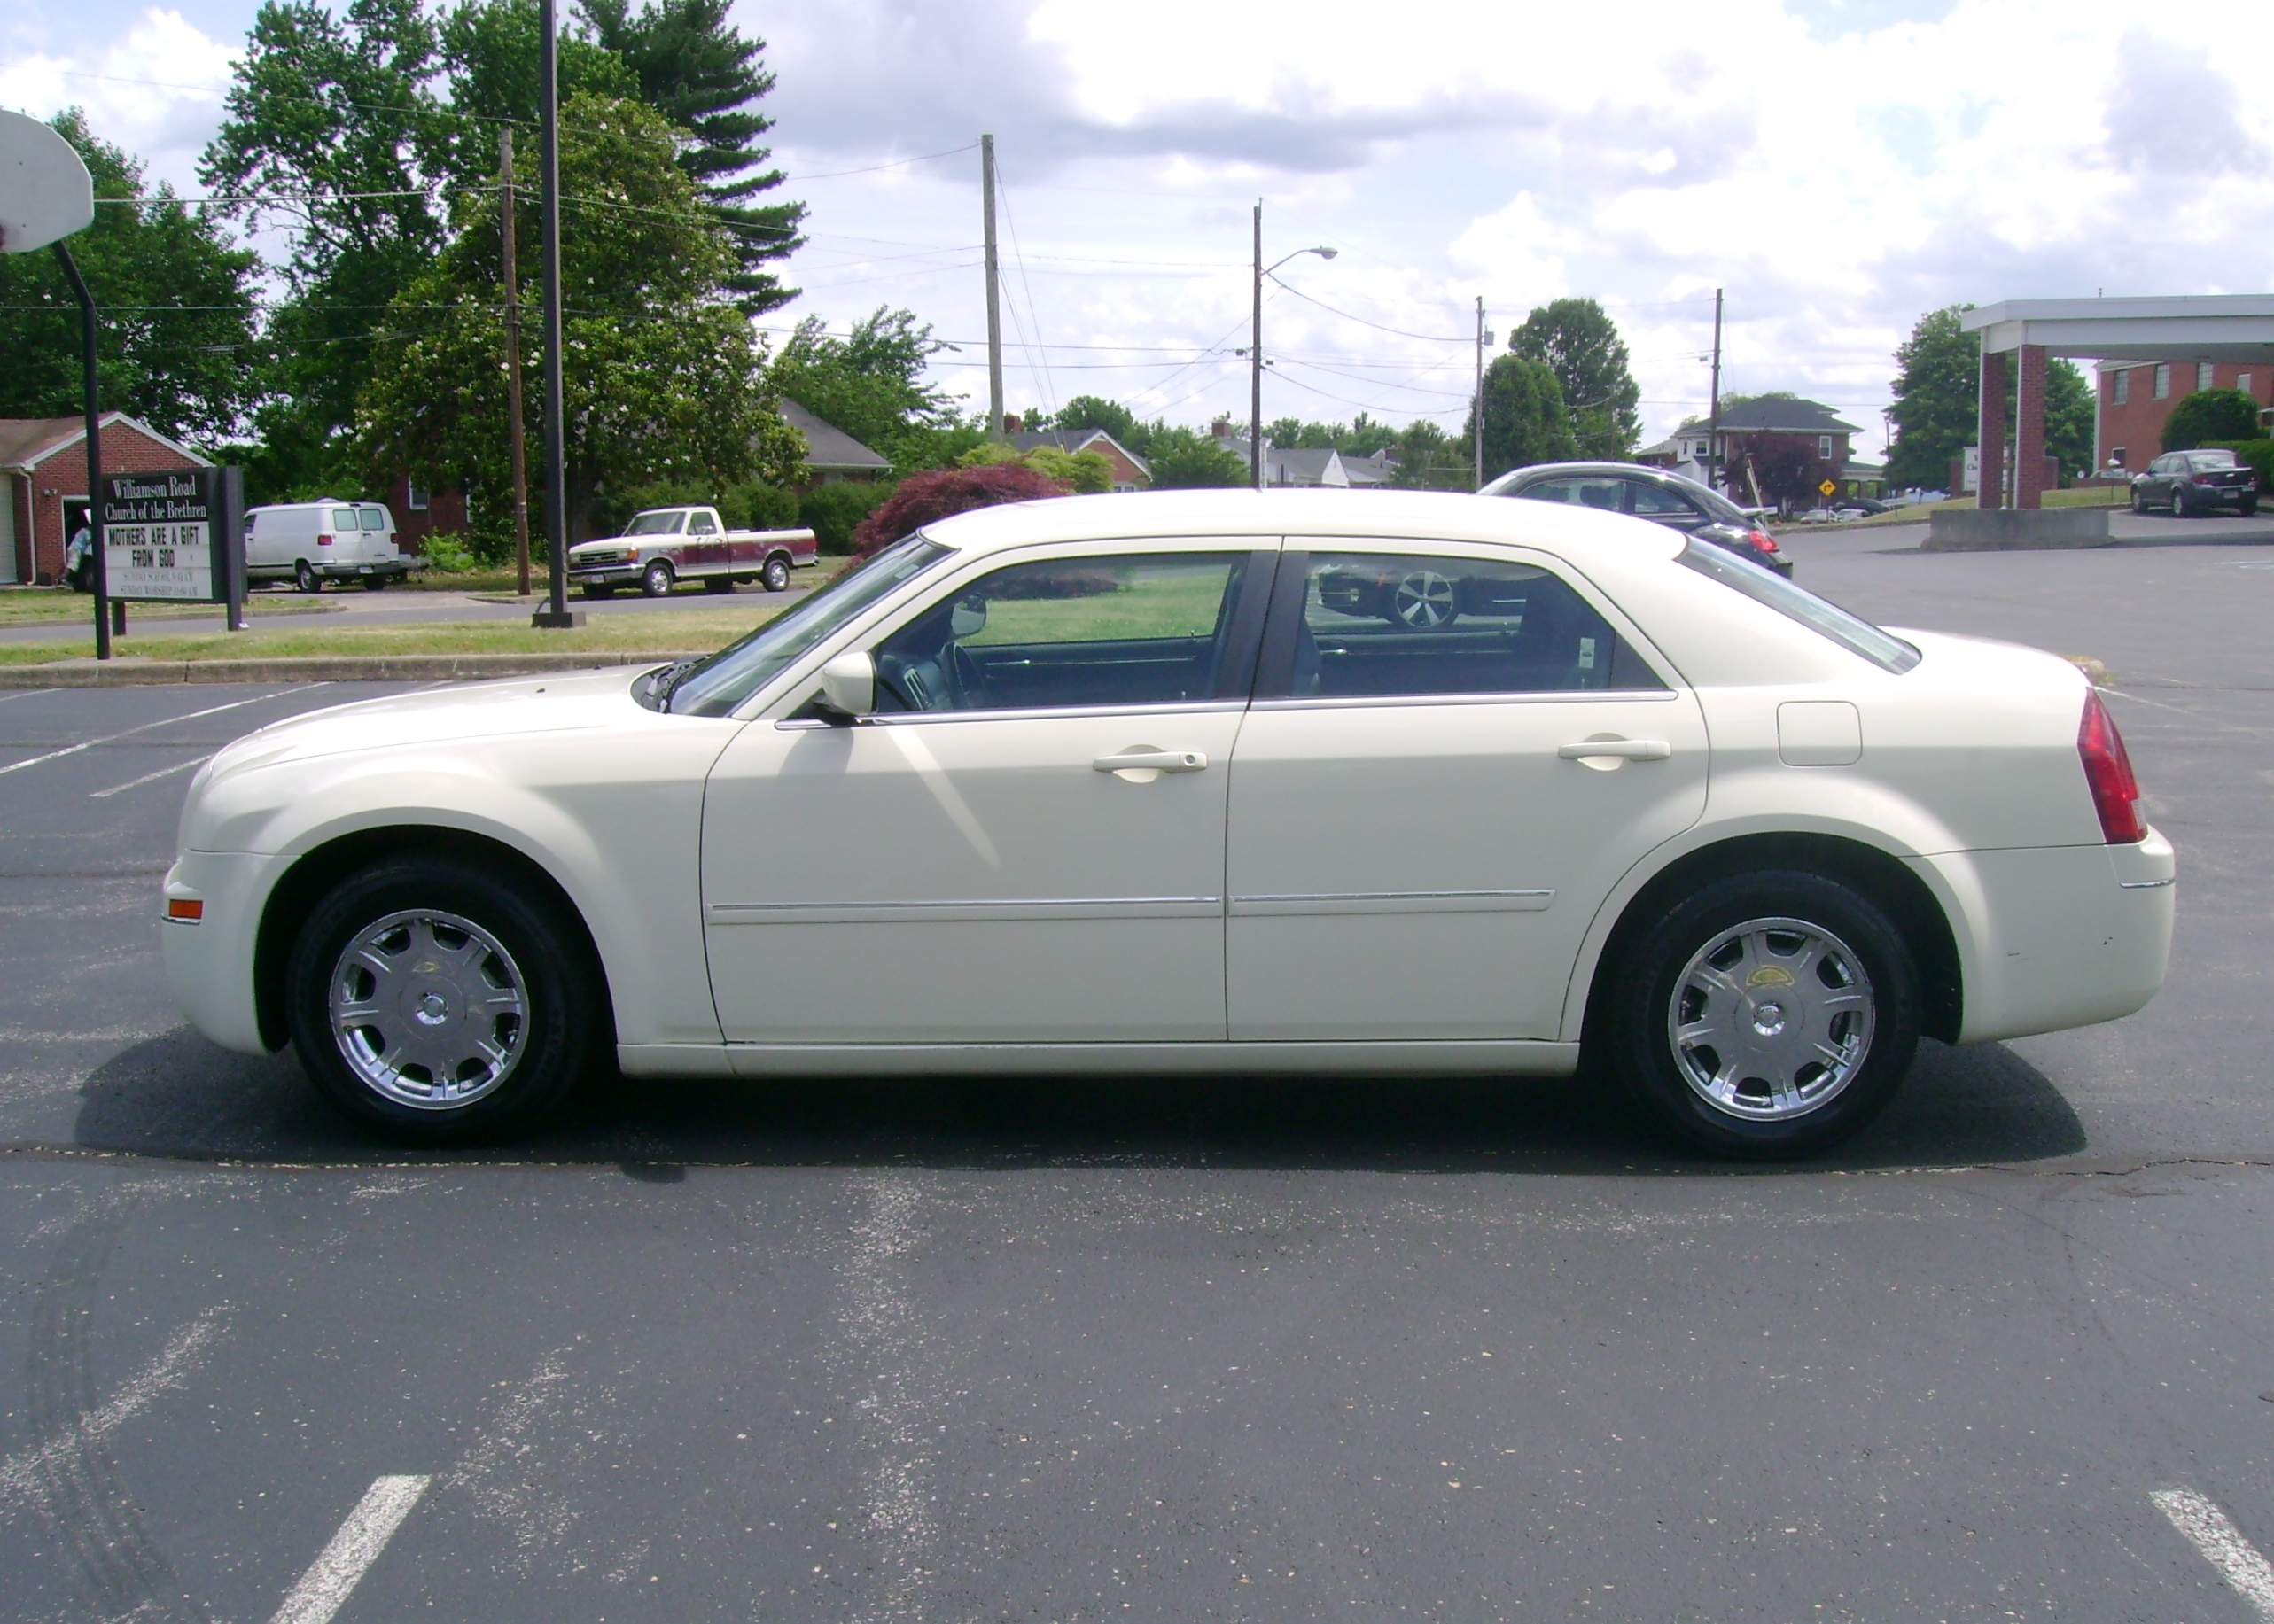 2006-Chrysler-300-008.jpg